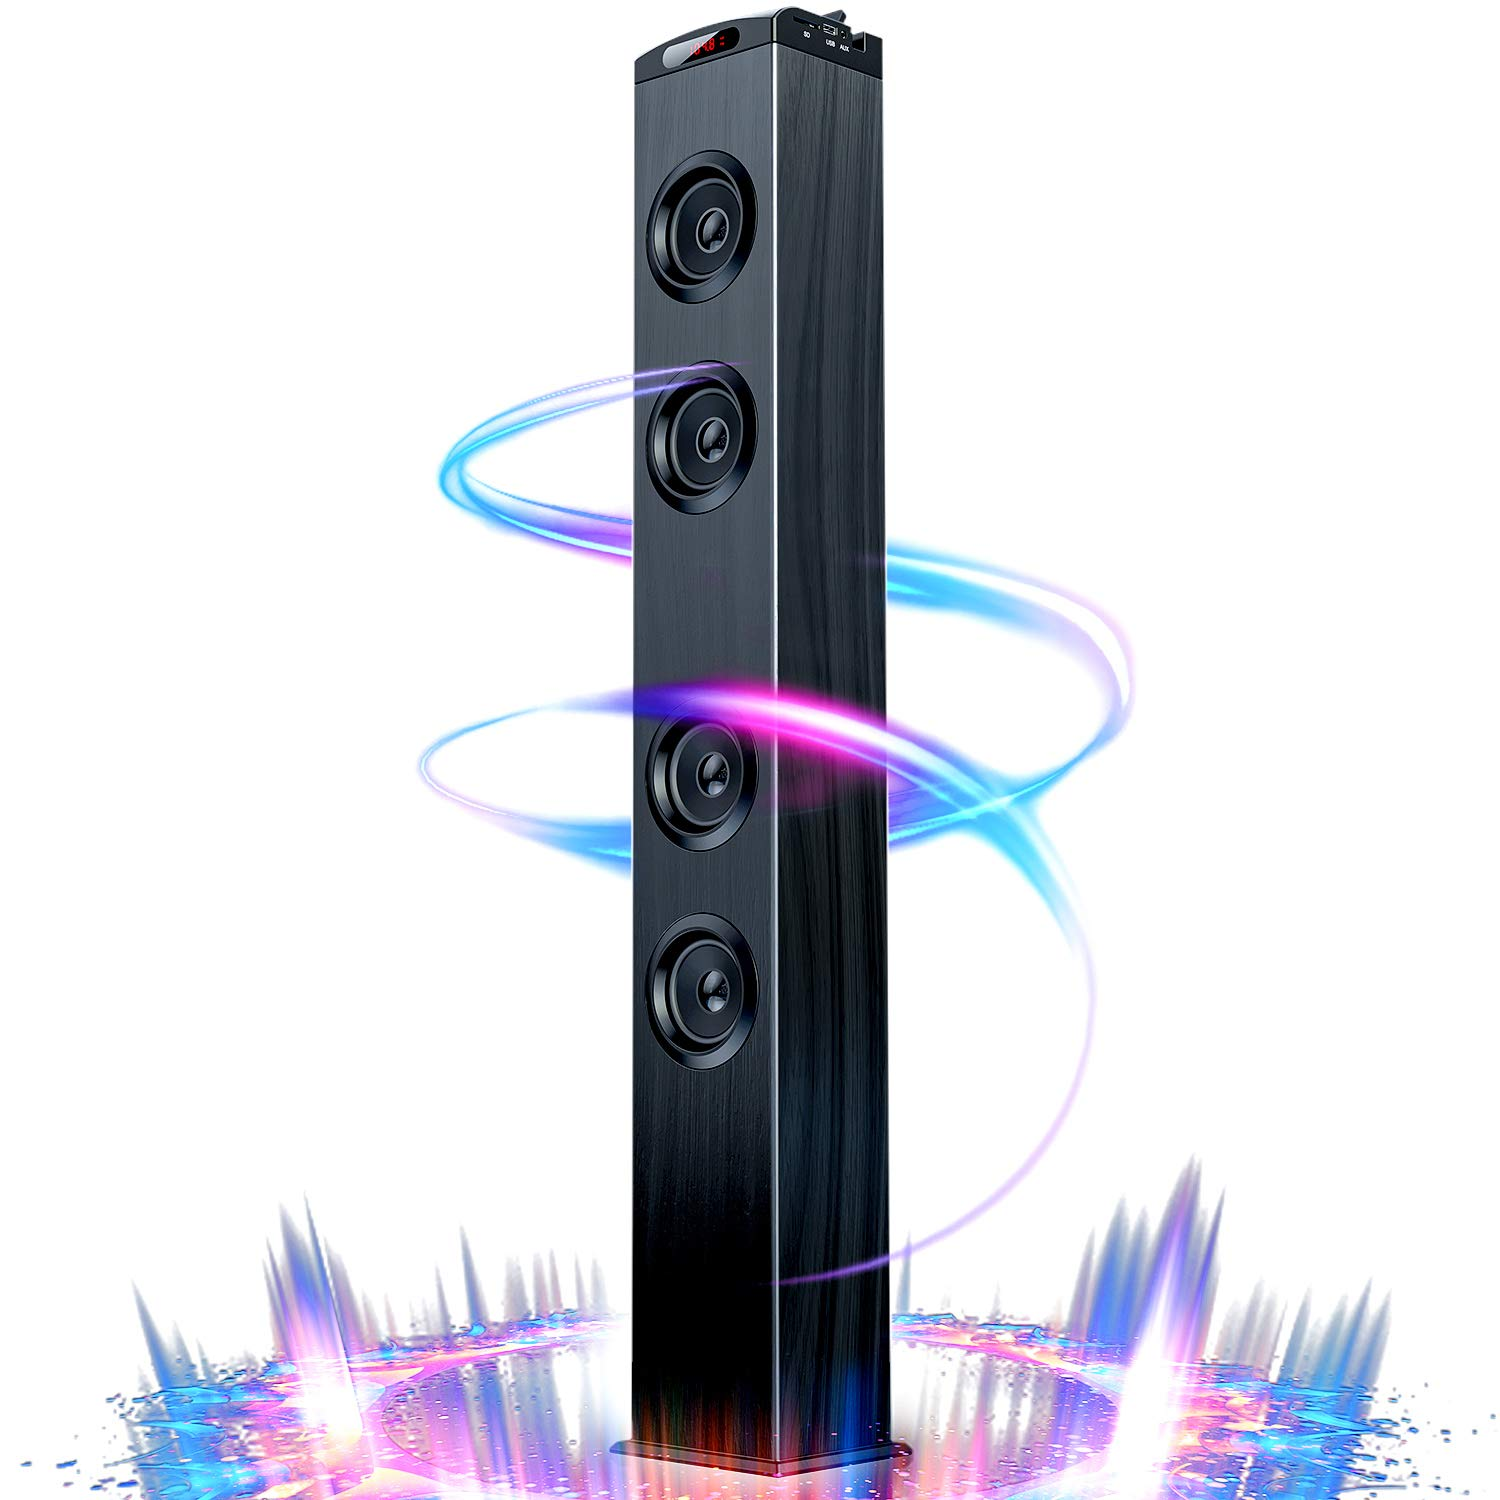 Floor Standing Bluetooth Tower Speaker, Floor Speakers for Home Stero System, Floor Standing Speakers Home Theater, VENLOIC Bluetooth Tower Speakers with Bass by VENLOIC